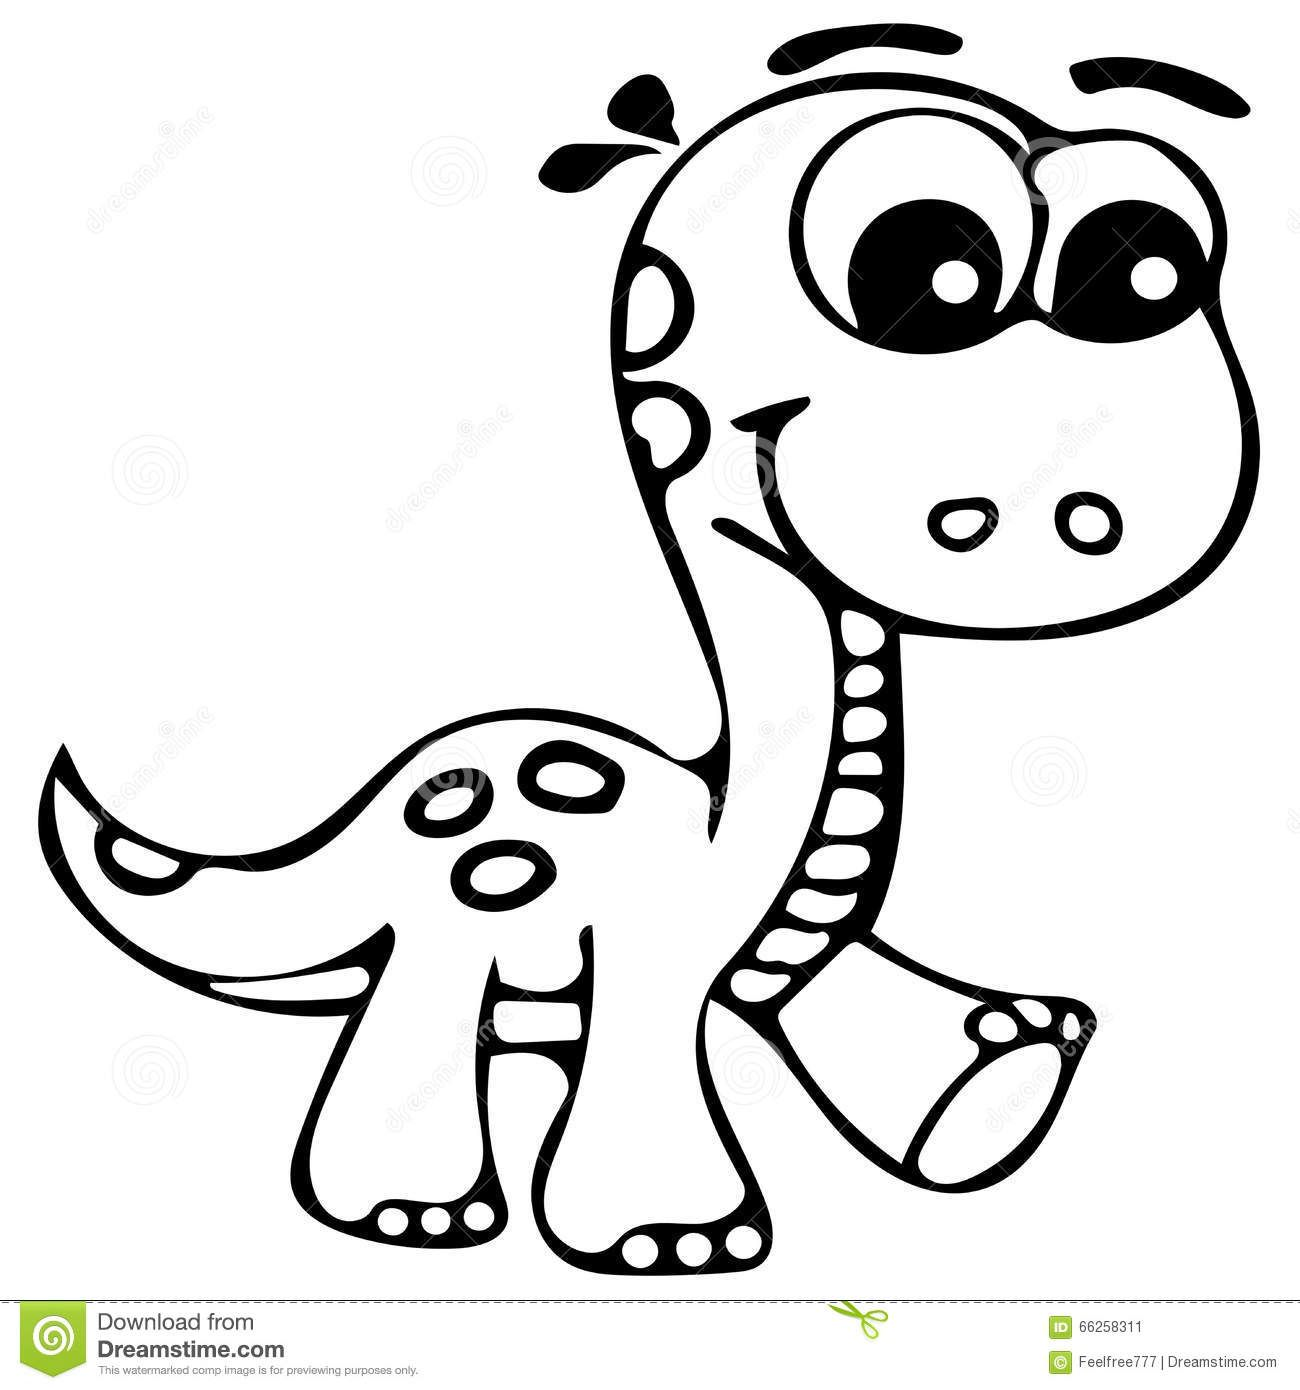 dinosaurs pictures to color baby dinosaur coloring pages for preschoolers activity color pictures to dinosaurs